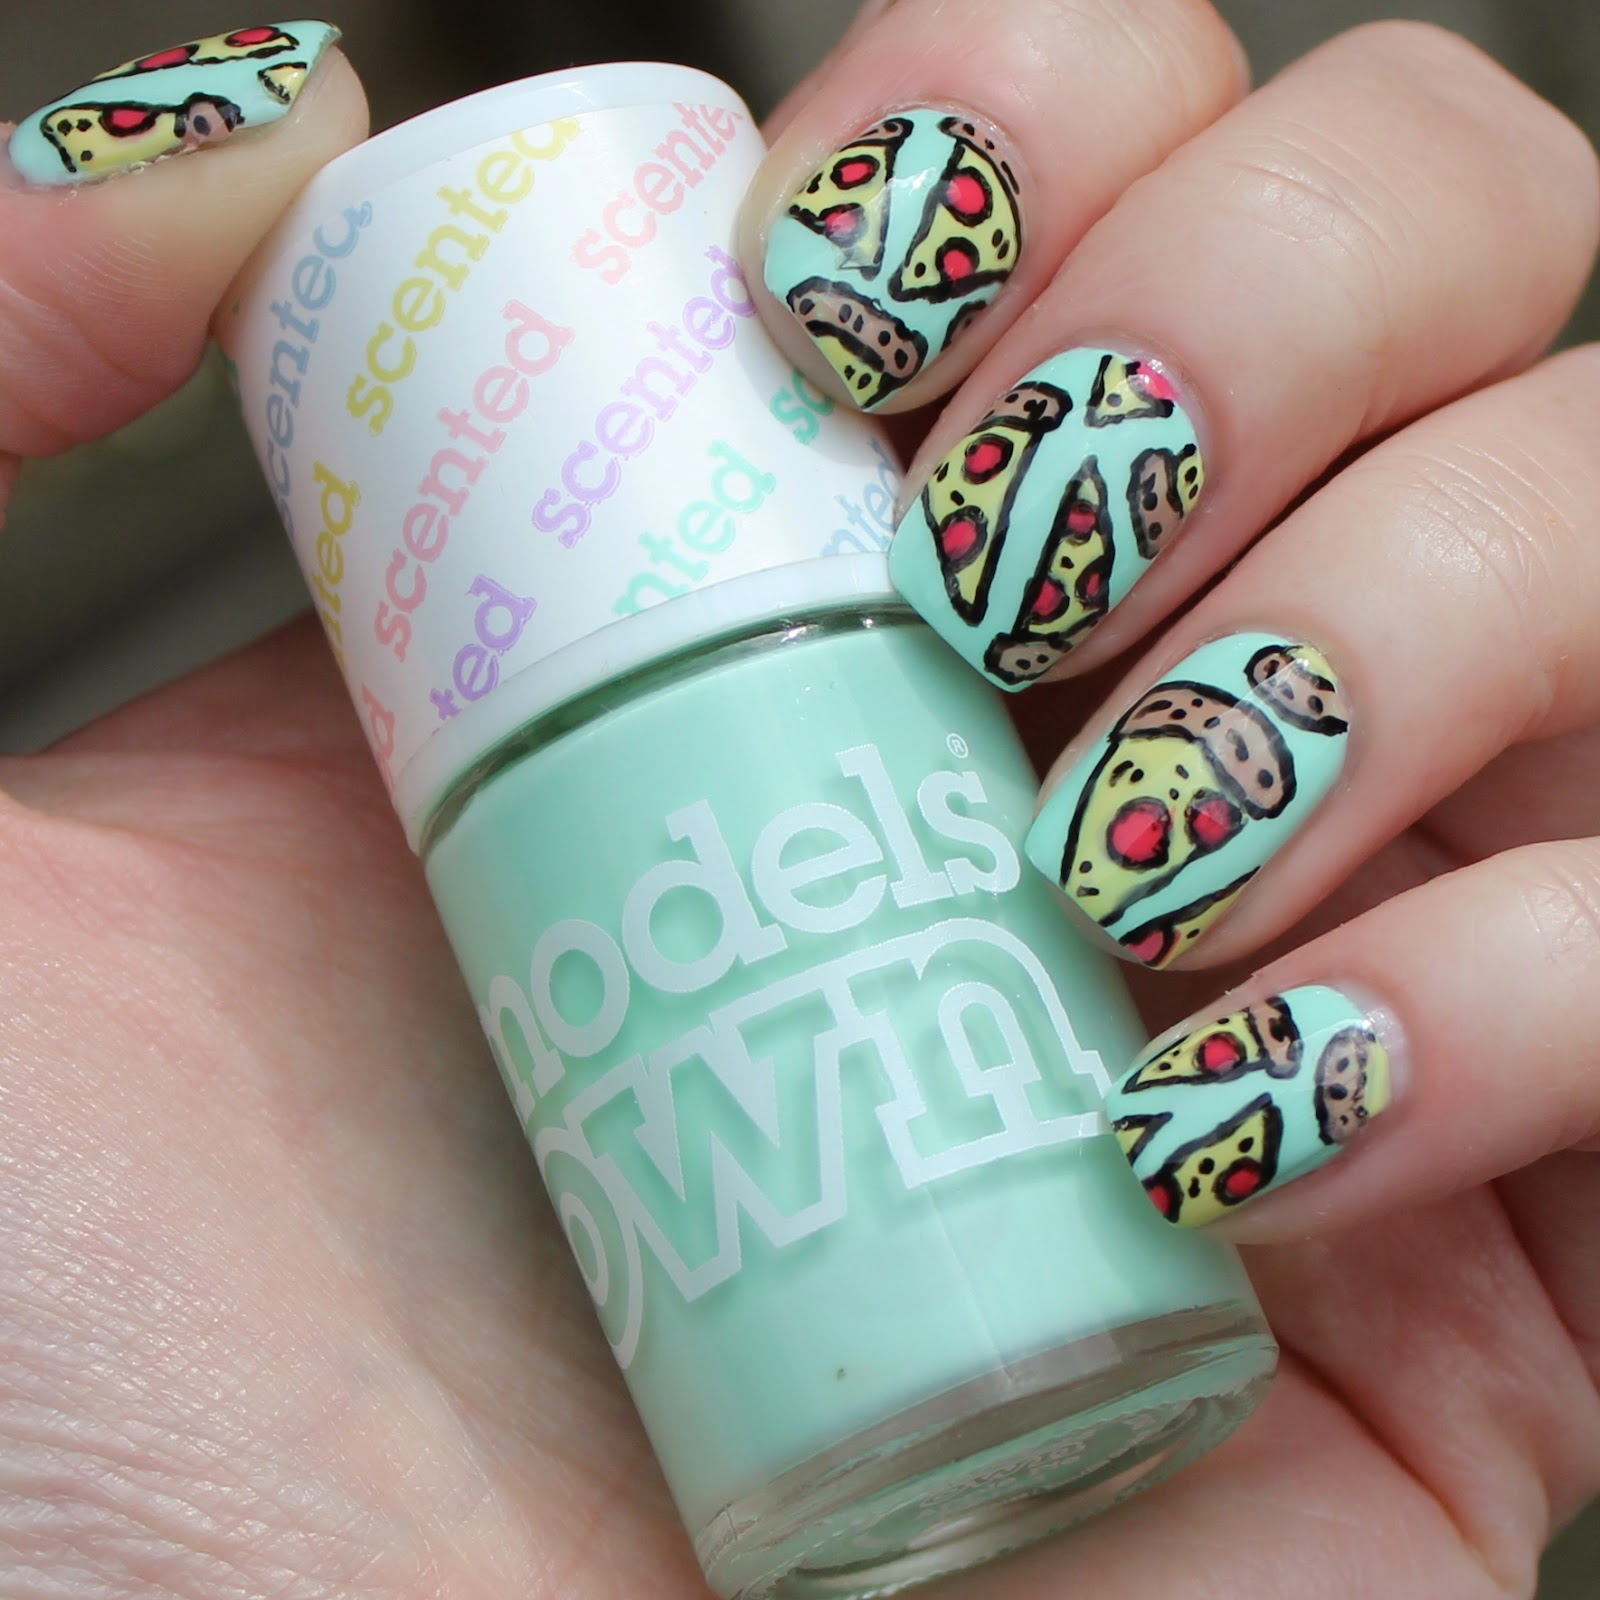 Dahlia Nails: When The Moon Hits Your Eye